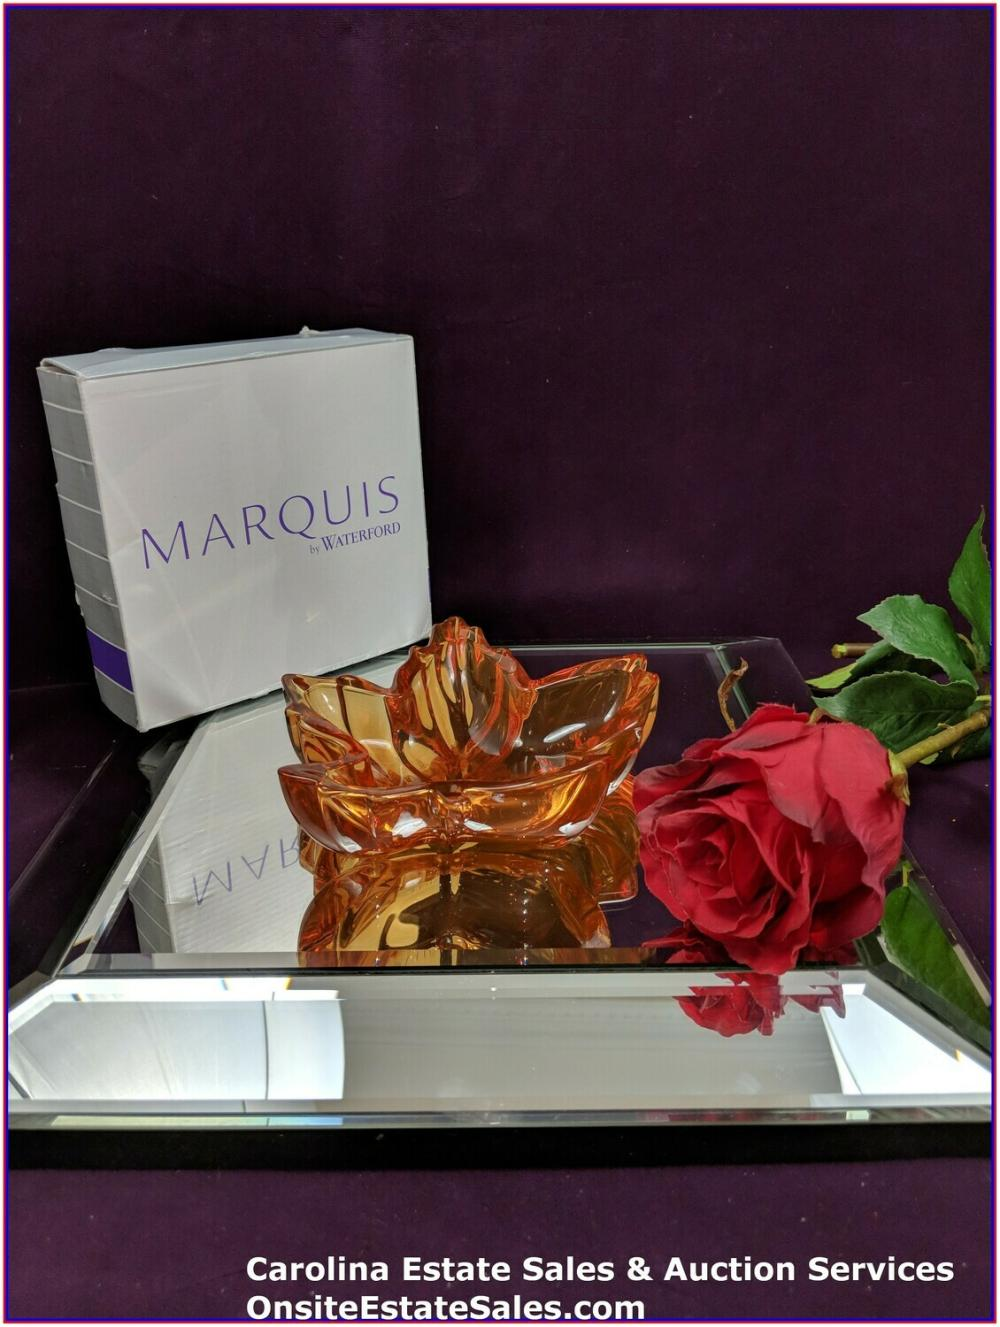 WATERFORD Marquis Maple Leaf Harvest Orange  Made in Germany Lead Crystal QTY:2